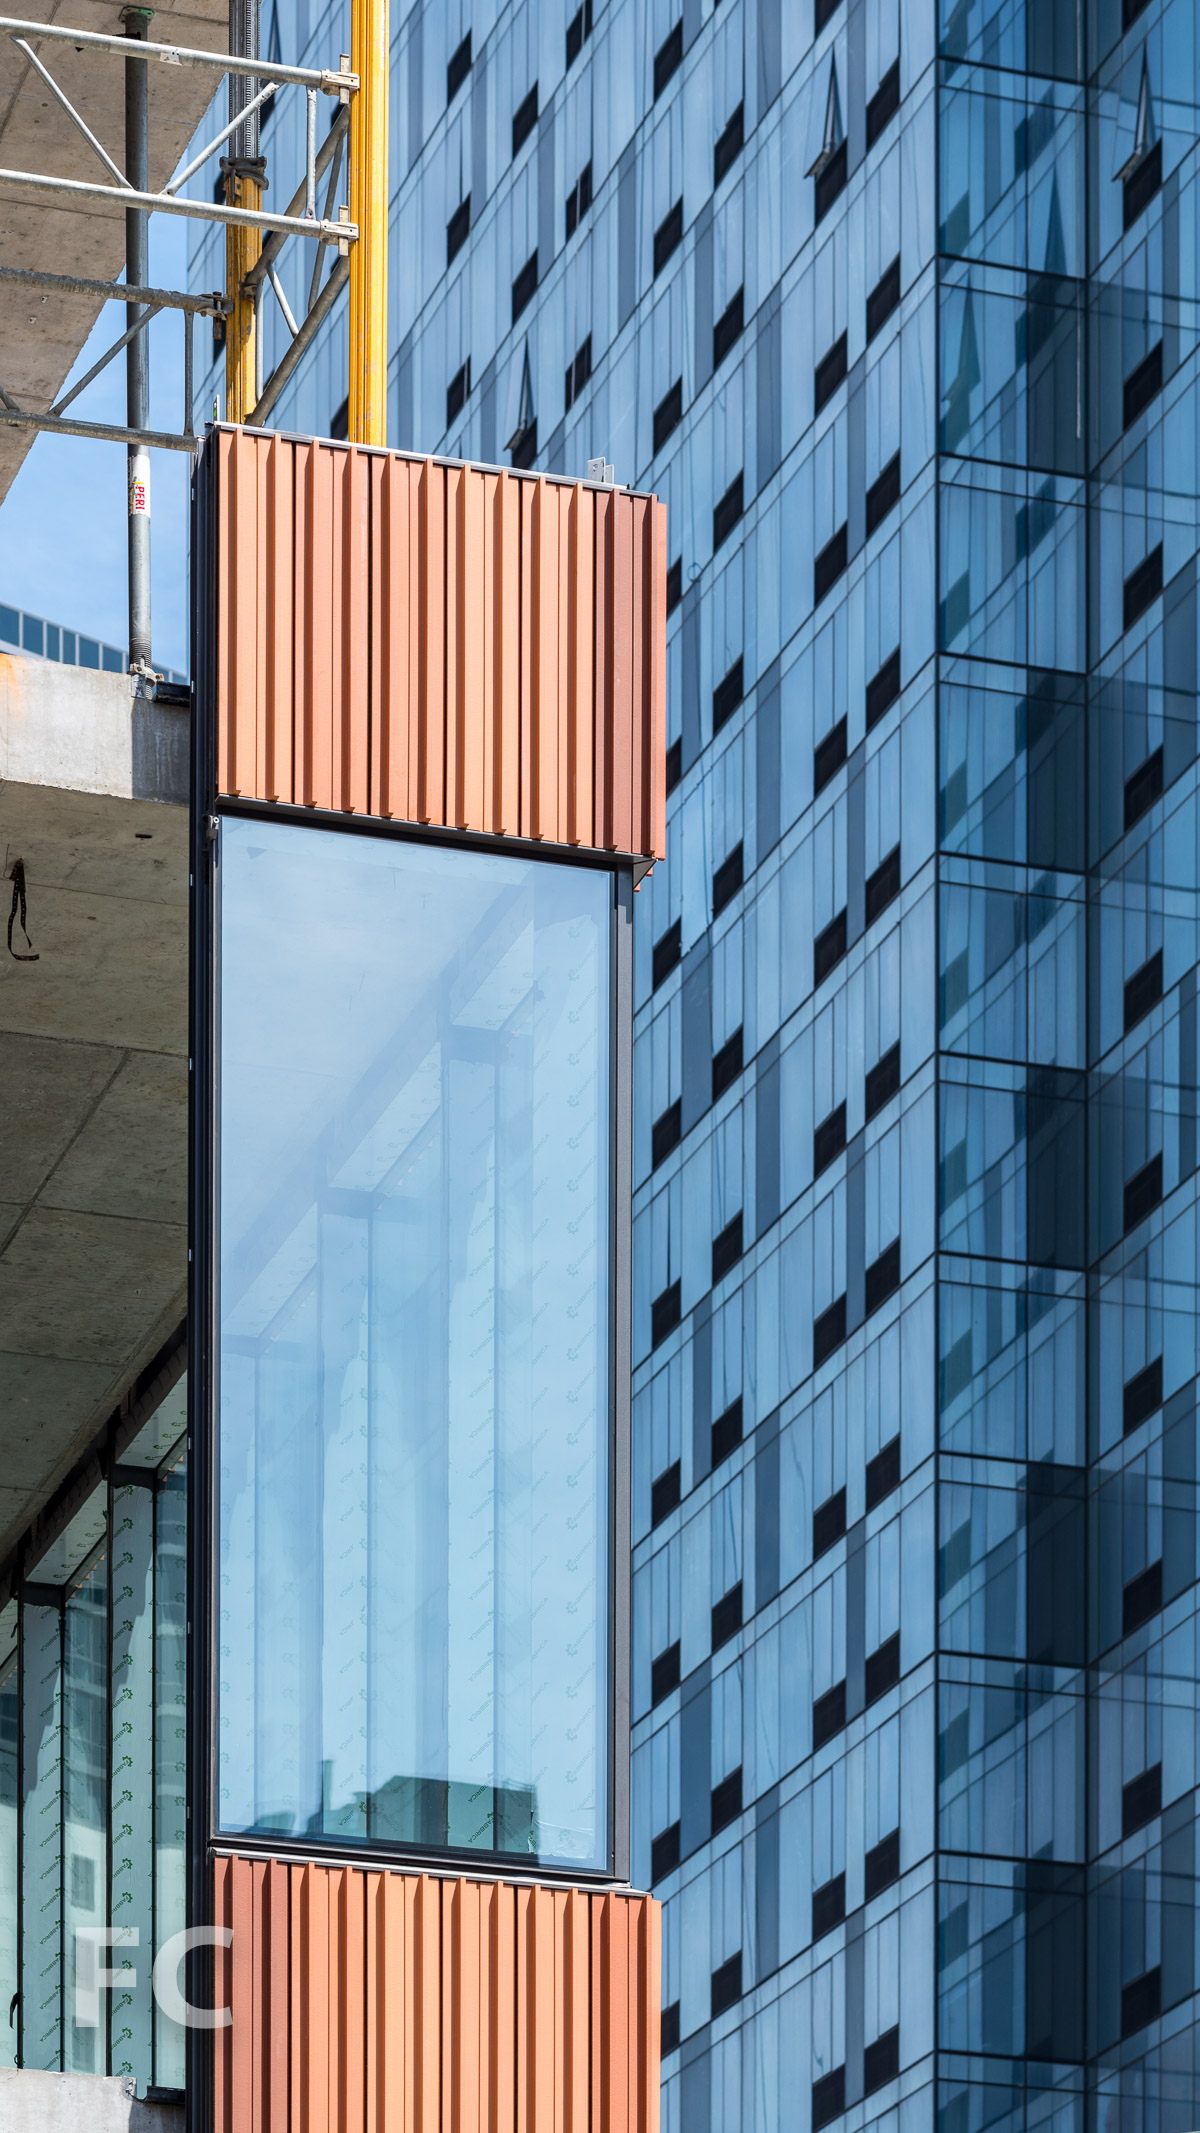 Close-up of the terracotta and glass curtain wall panels.